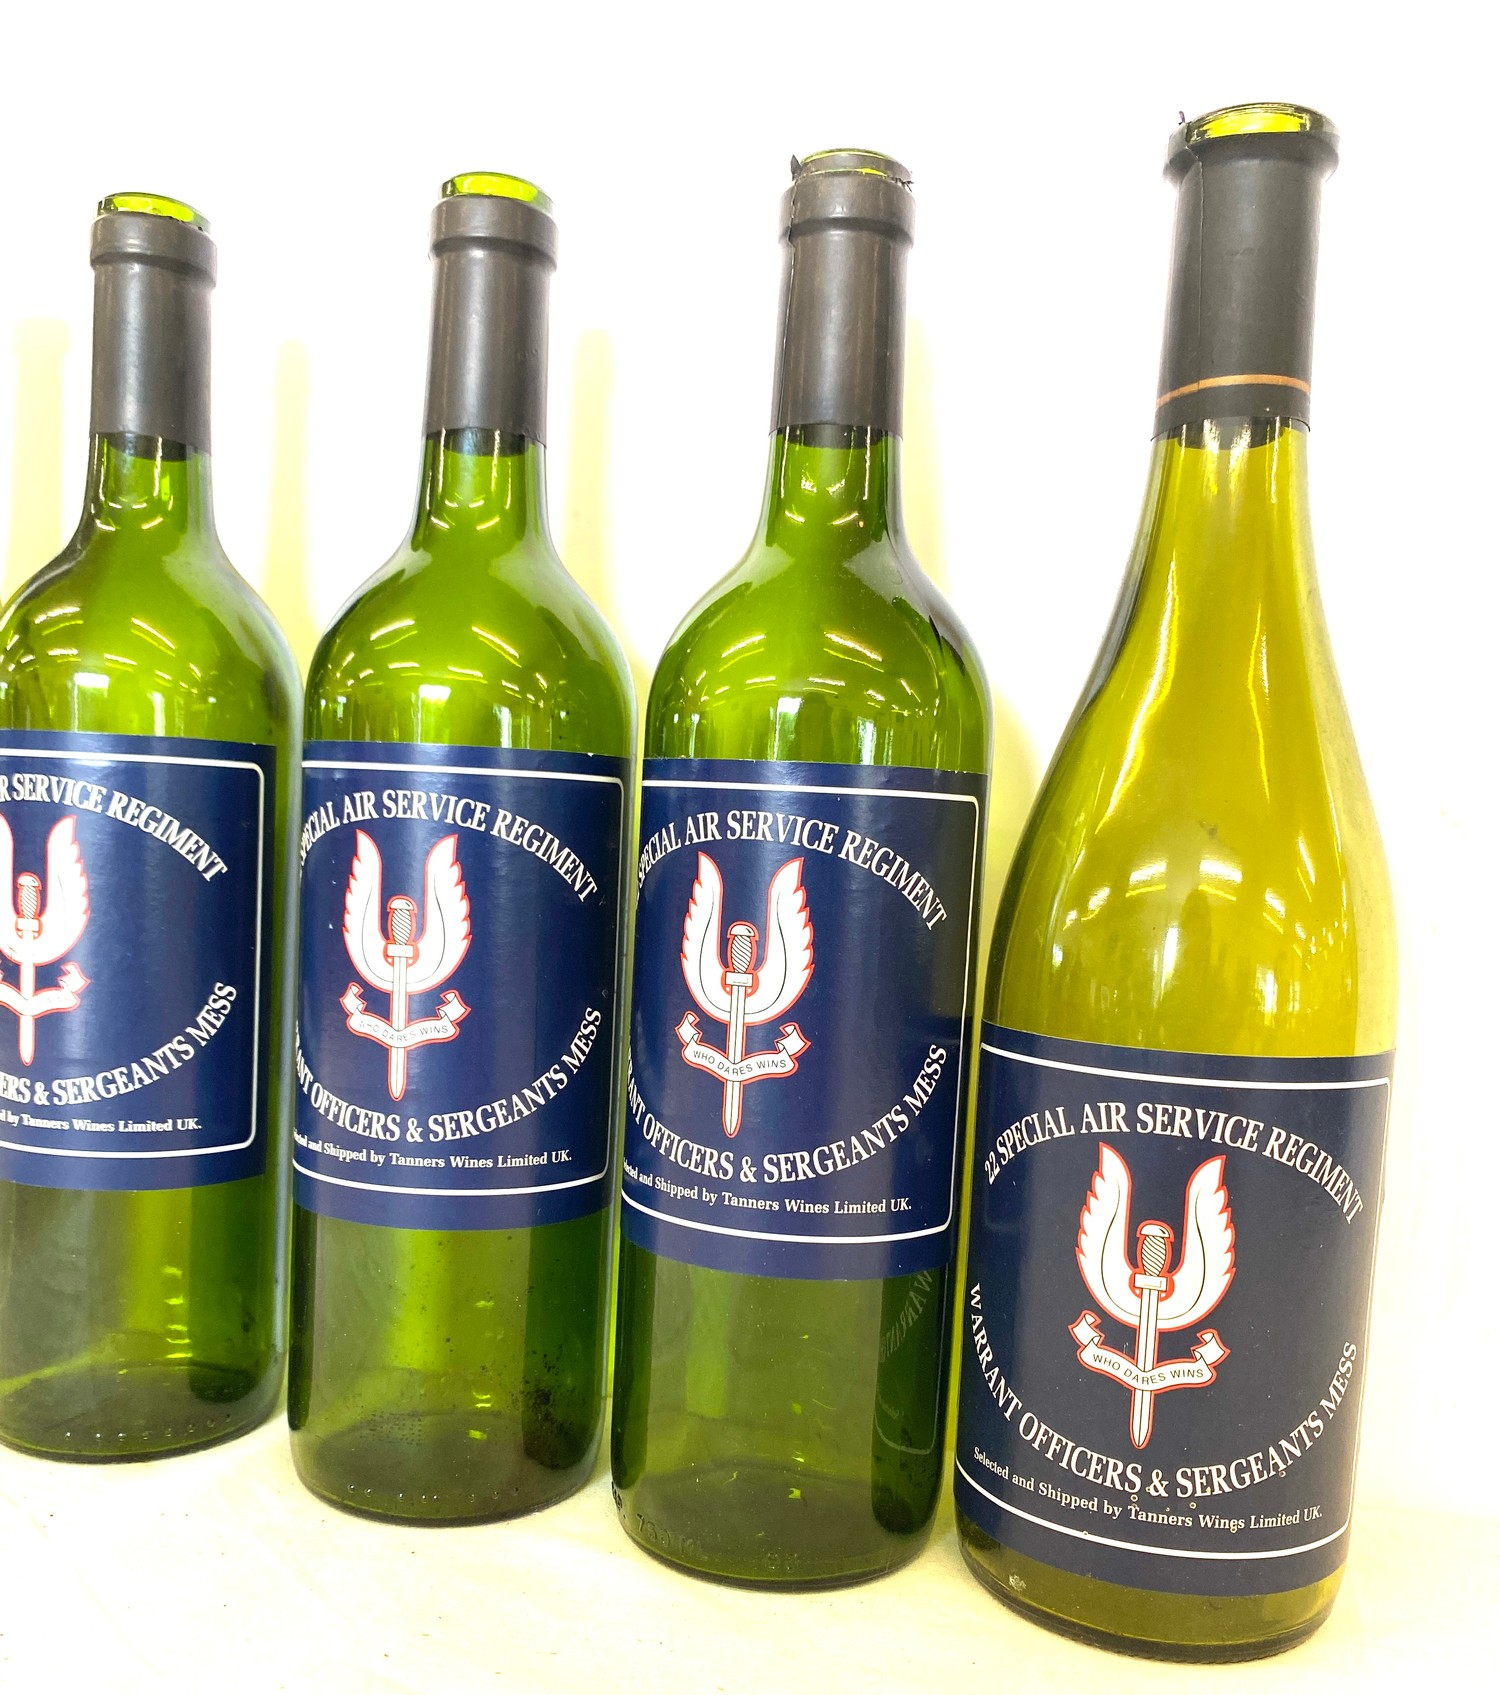 """Box of 13 """"22 Special Service Regiment"""" wine bottles - empty - Image 2 of 3"""